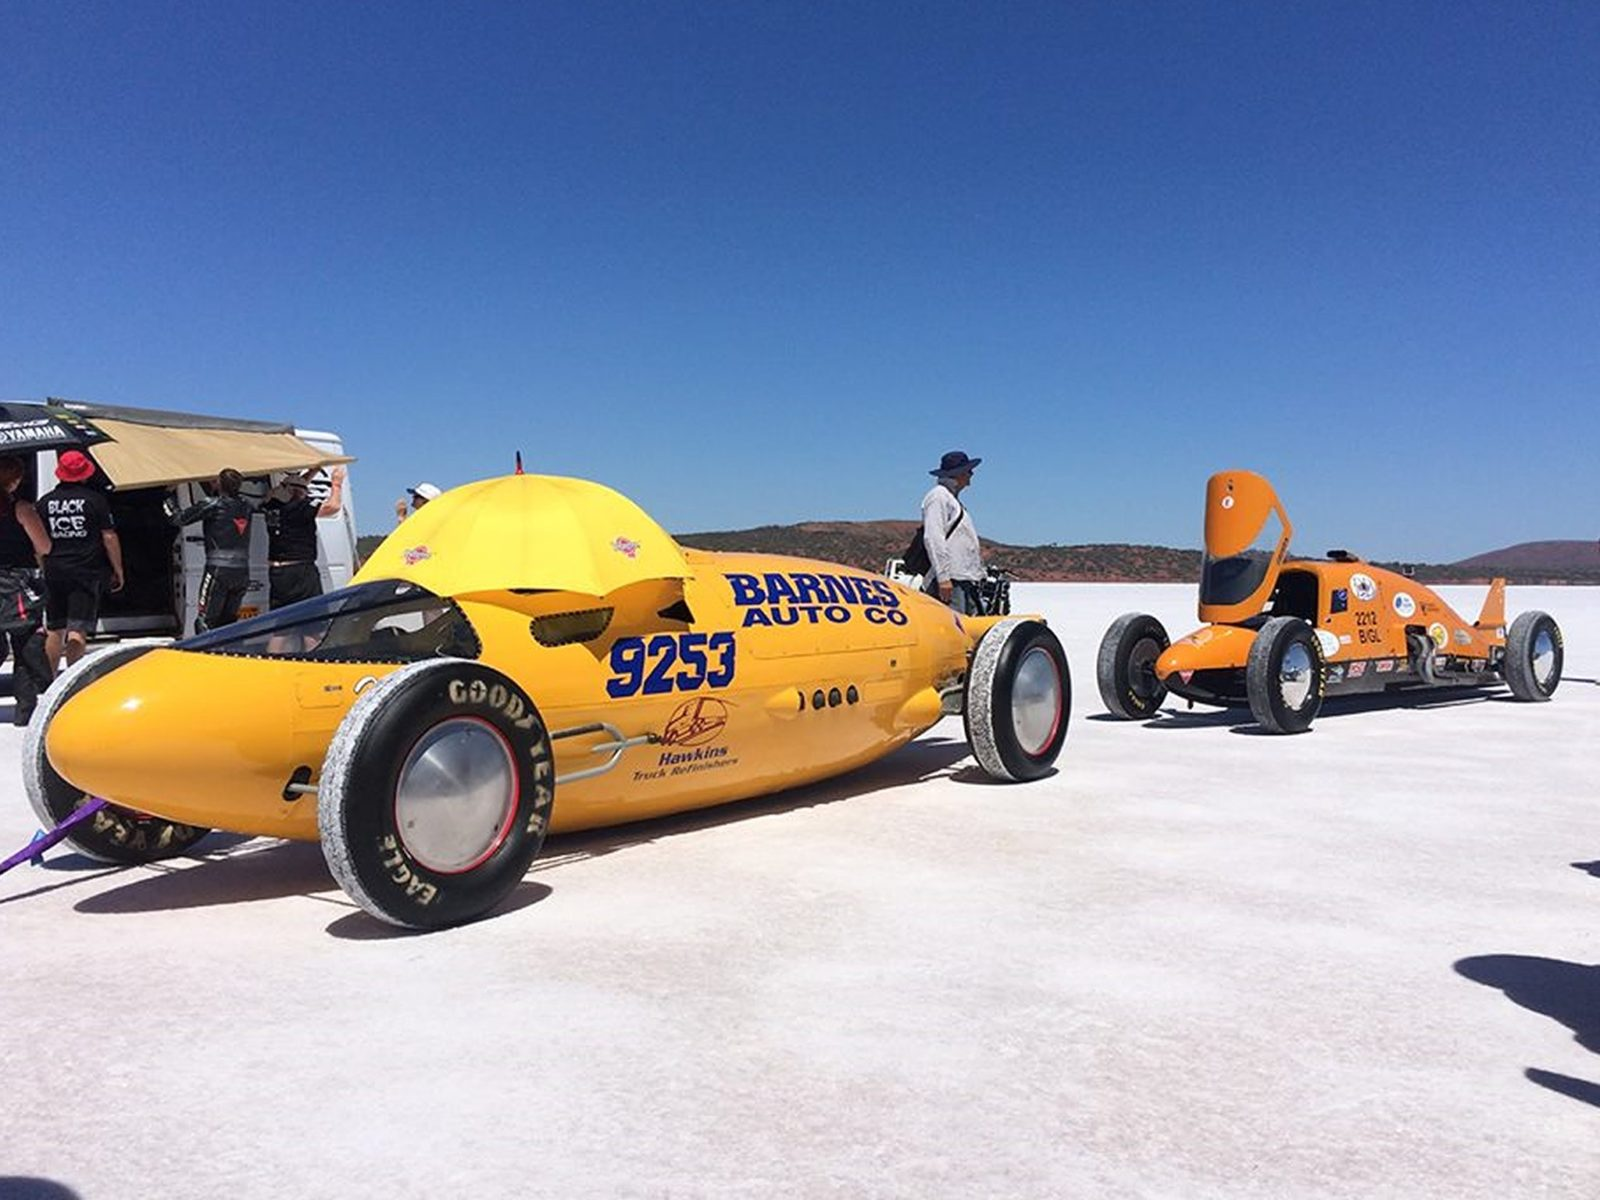 Vehicles at the start line of DLRA Speed Week